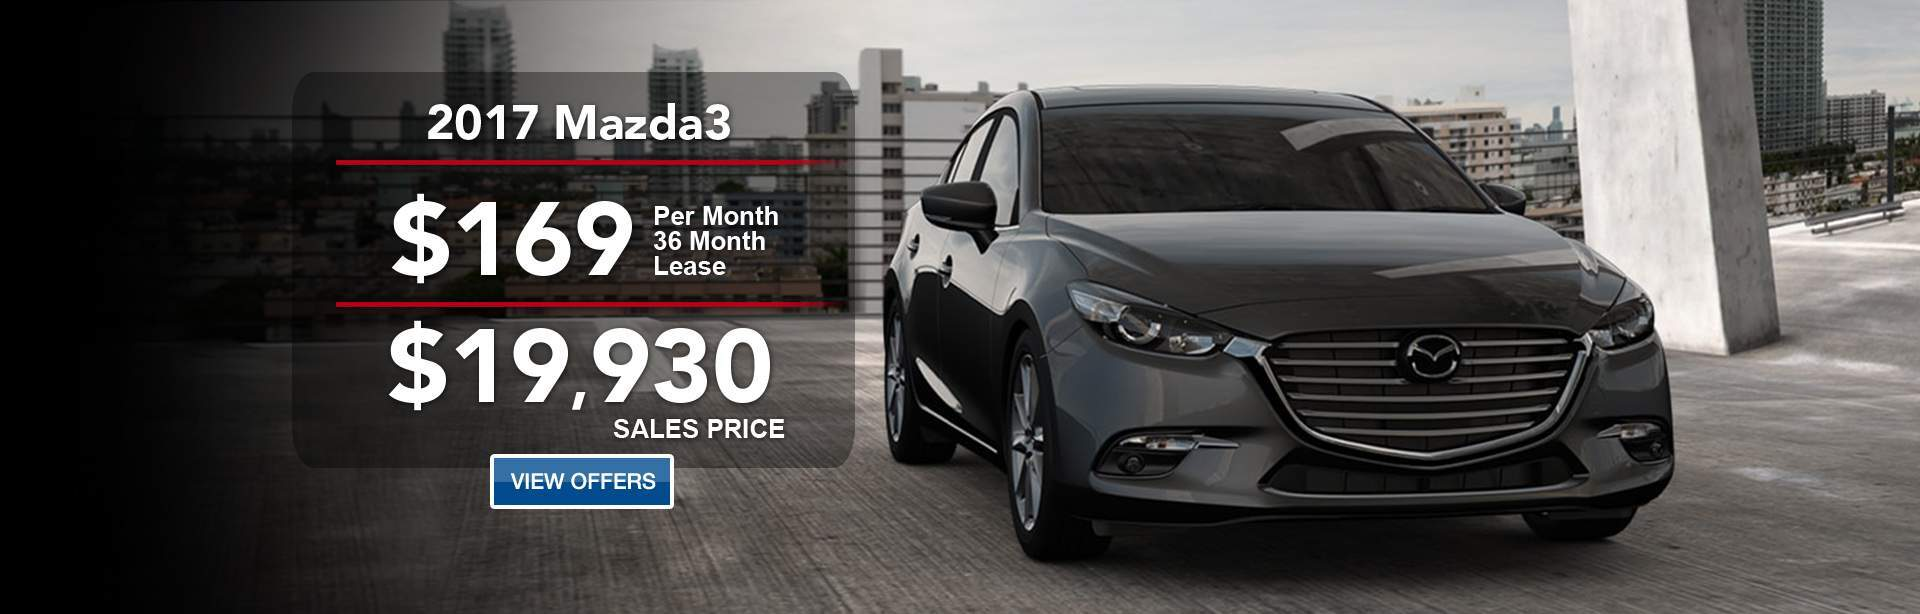 Mazda3 Deals at Bert Ogden Mazda Mission